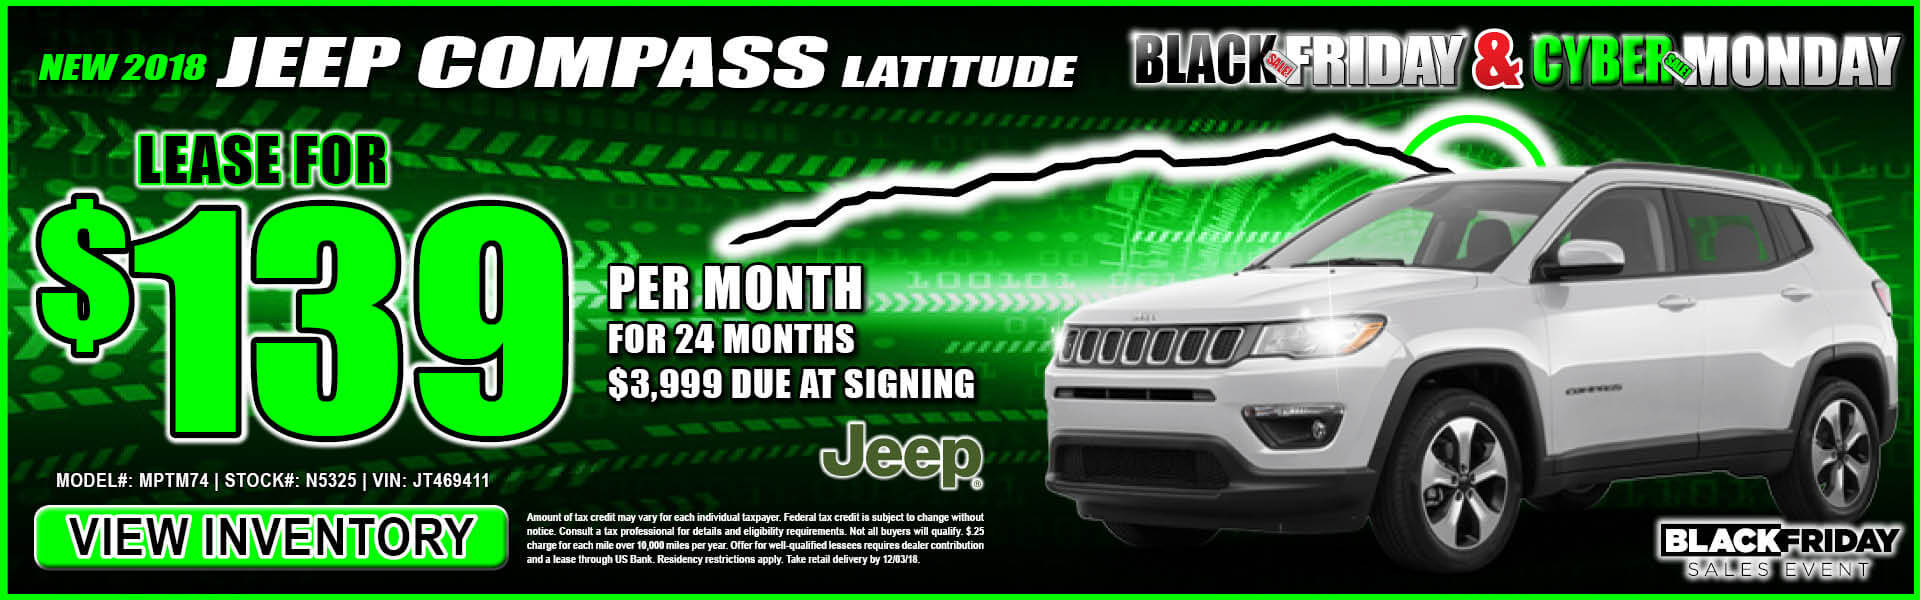 Jeep Compass $139 Lease